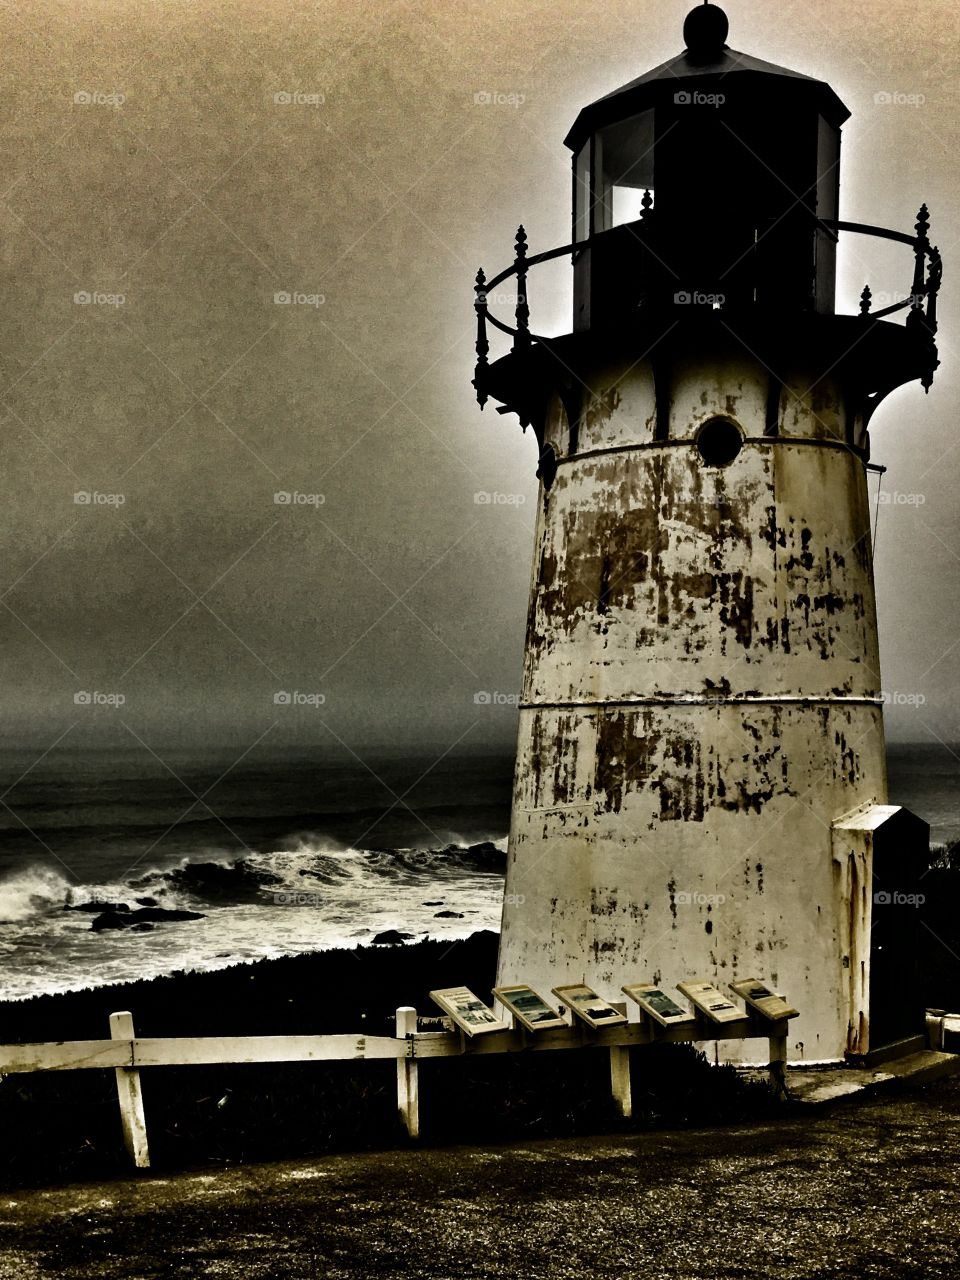 We all night a lighthouse in our lives.